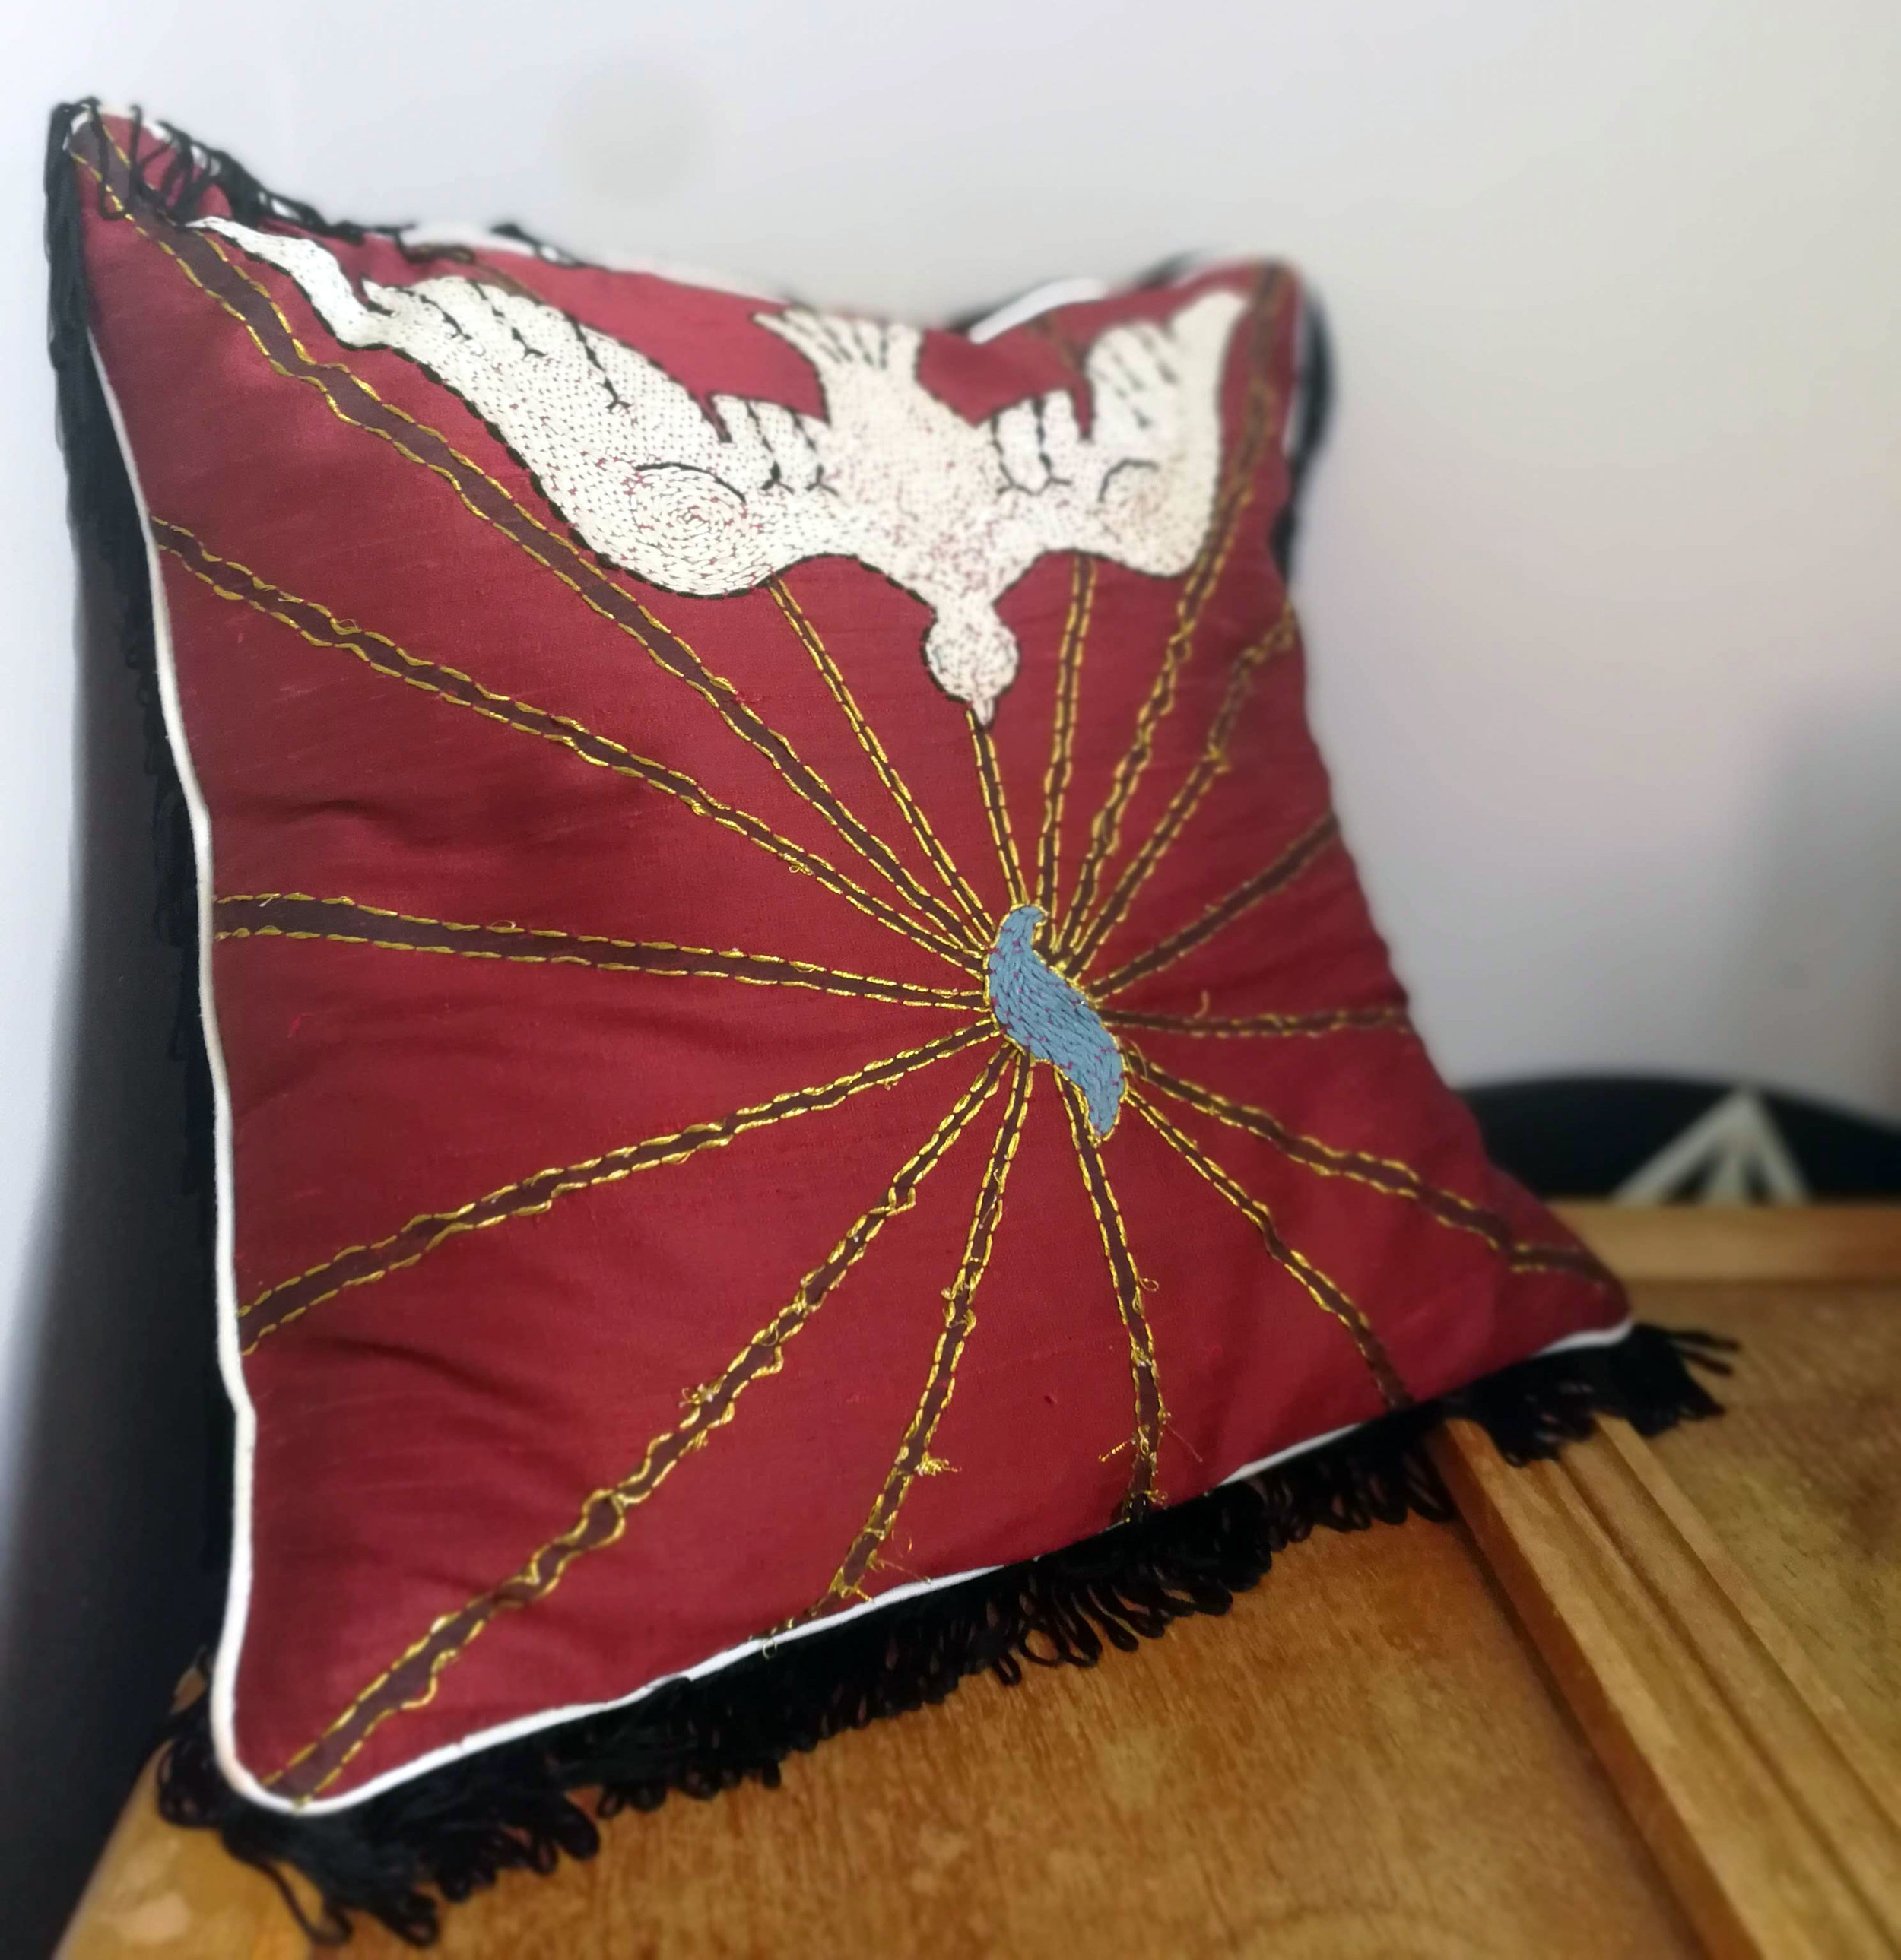 ulysses-black---dove-cushion---3years-later.jpg